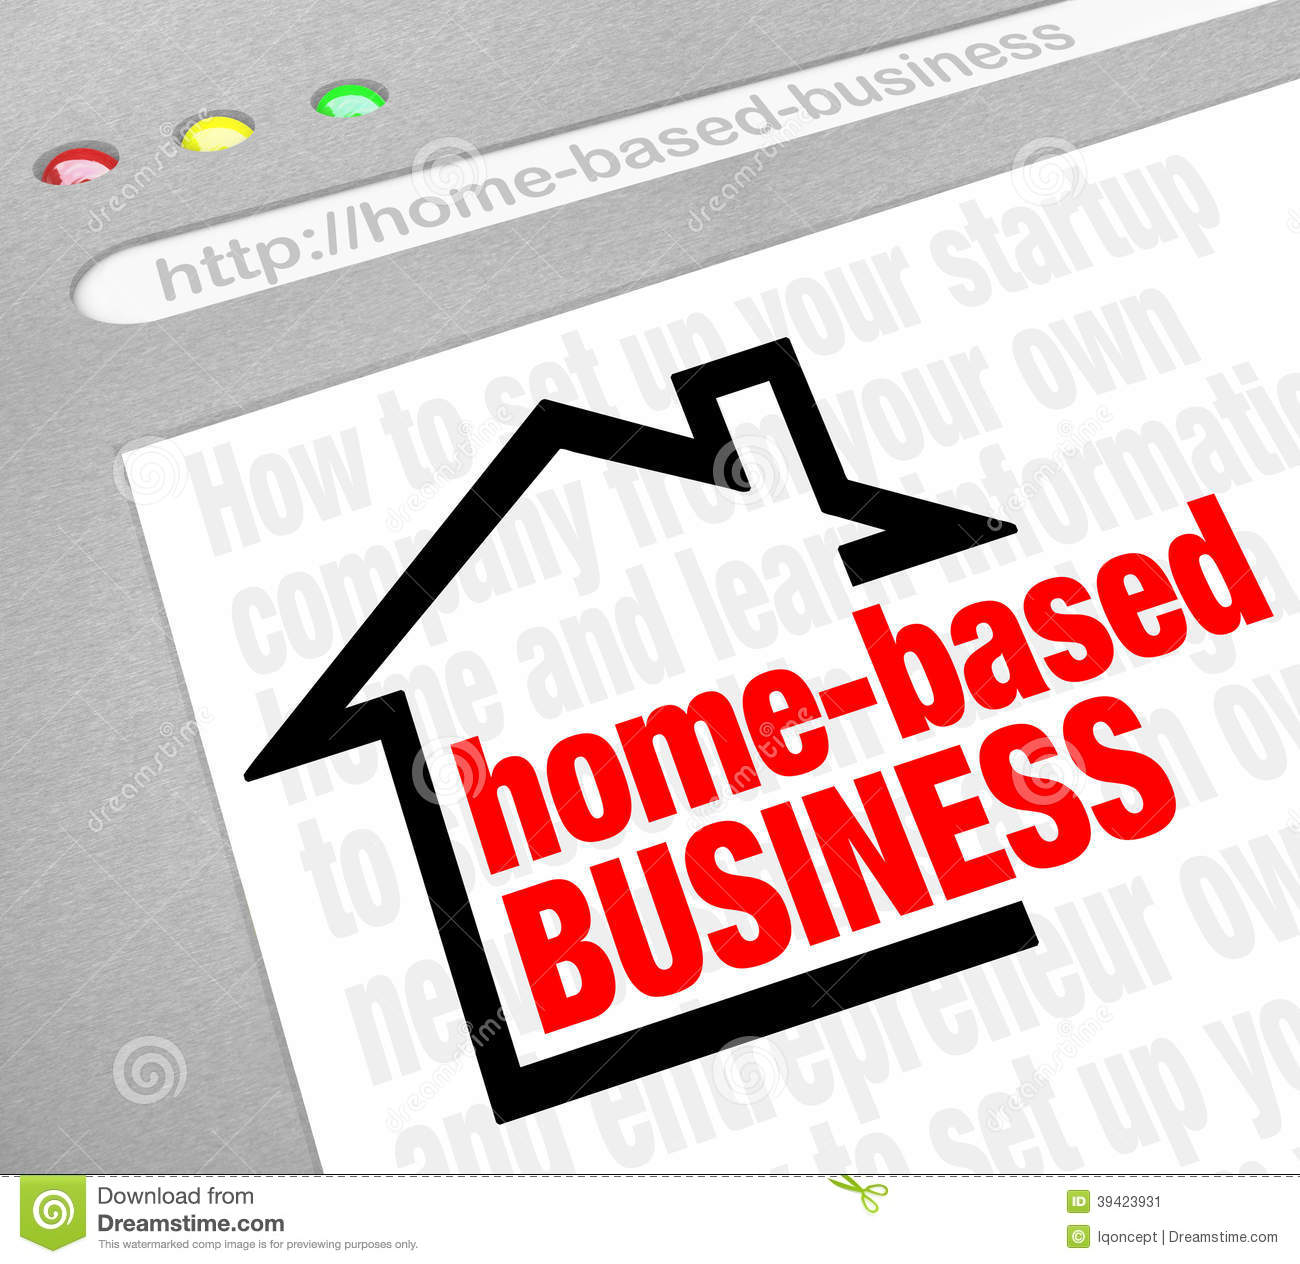 Home Based Business Advice Information Tips Online Website Inter Stock Illustration